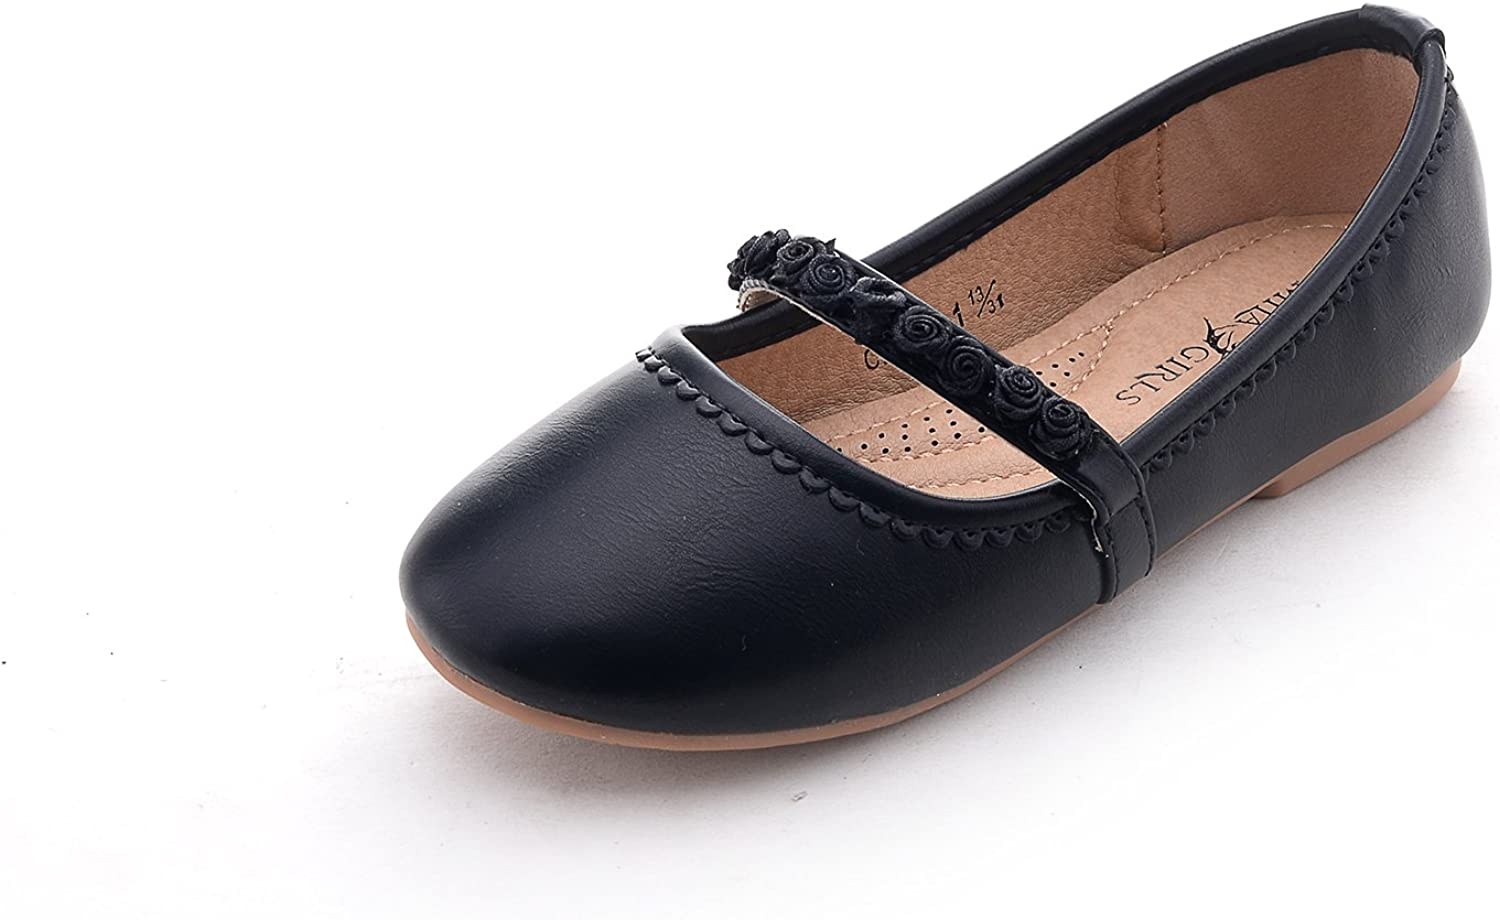 A-CANDY01 Black T7 Ashley A Collection Casual Slip ON Ballerina Flat Shoes